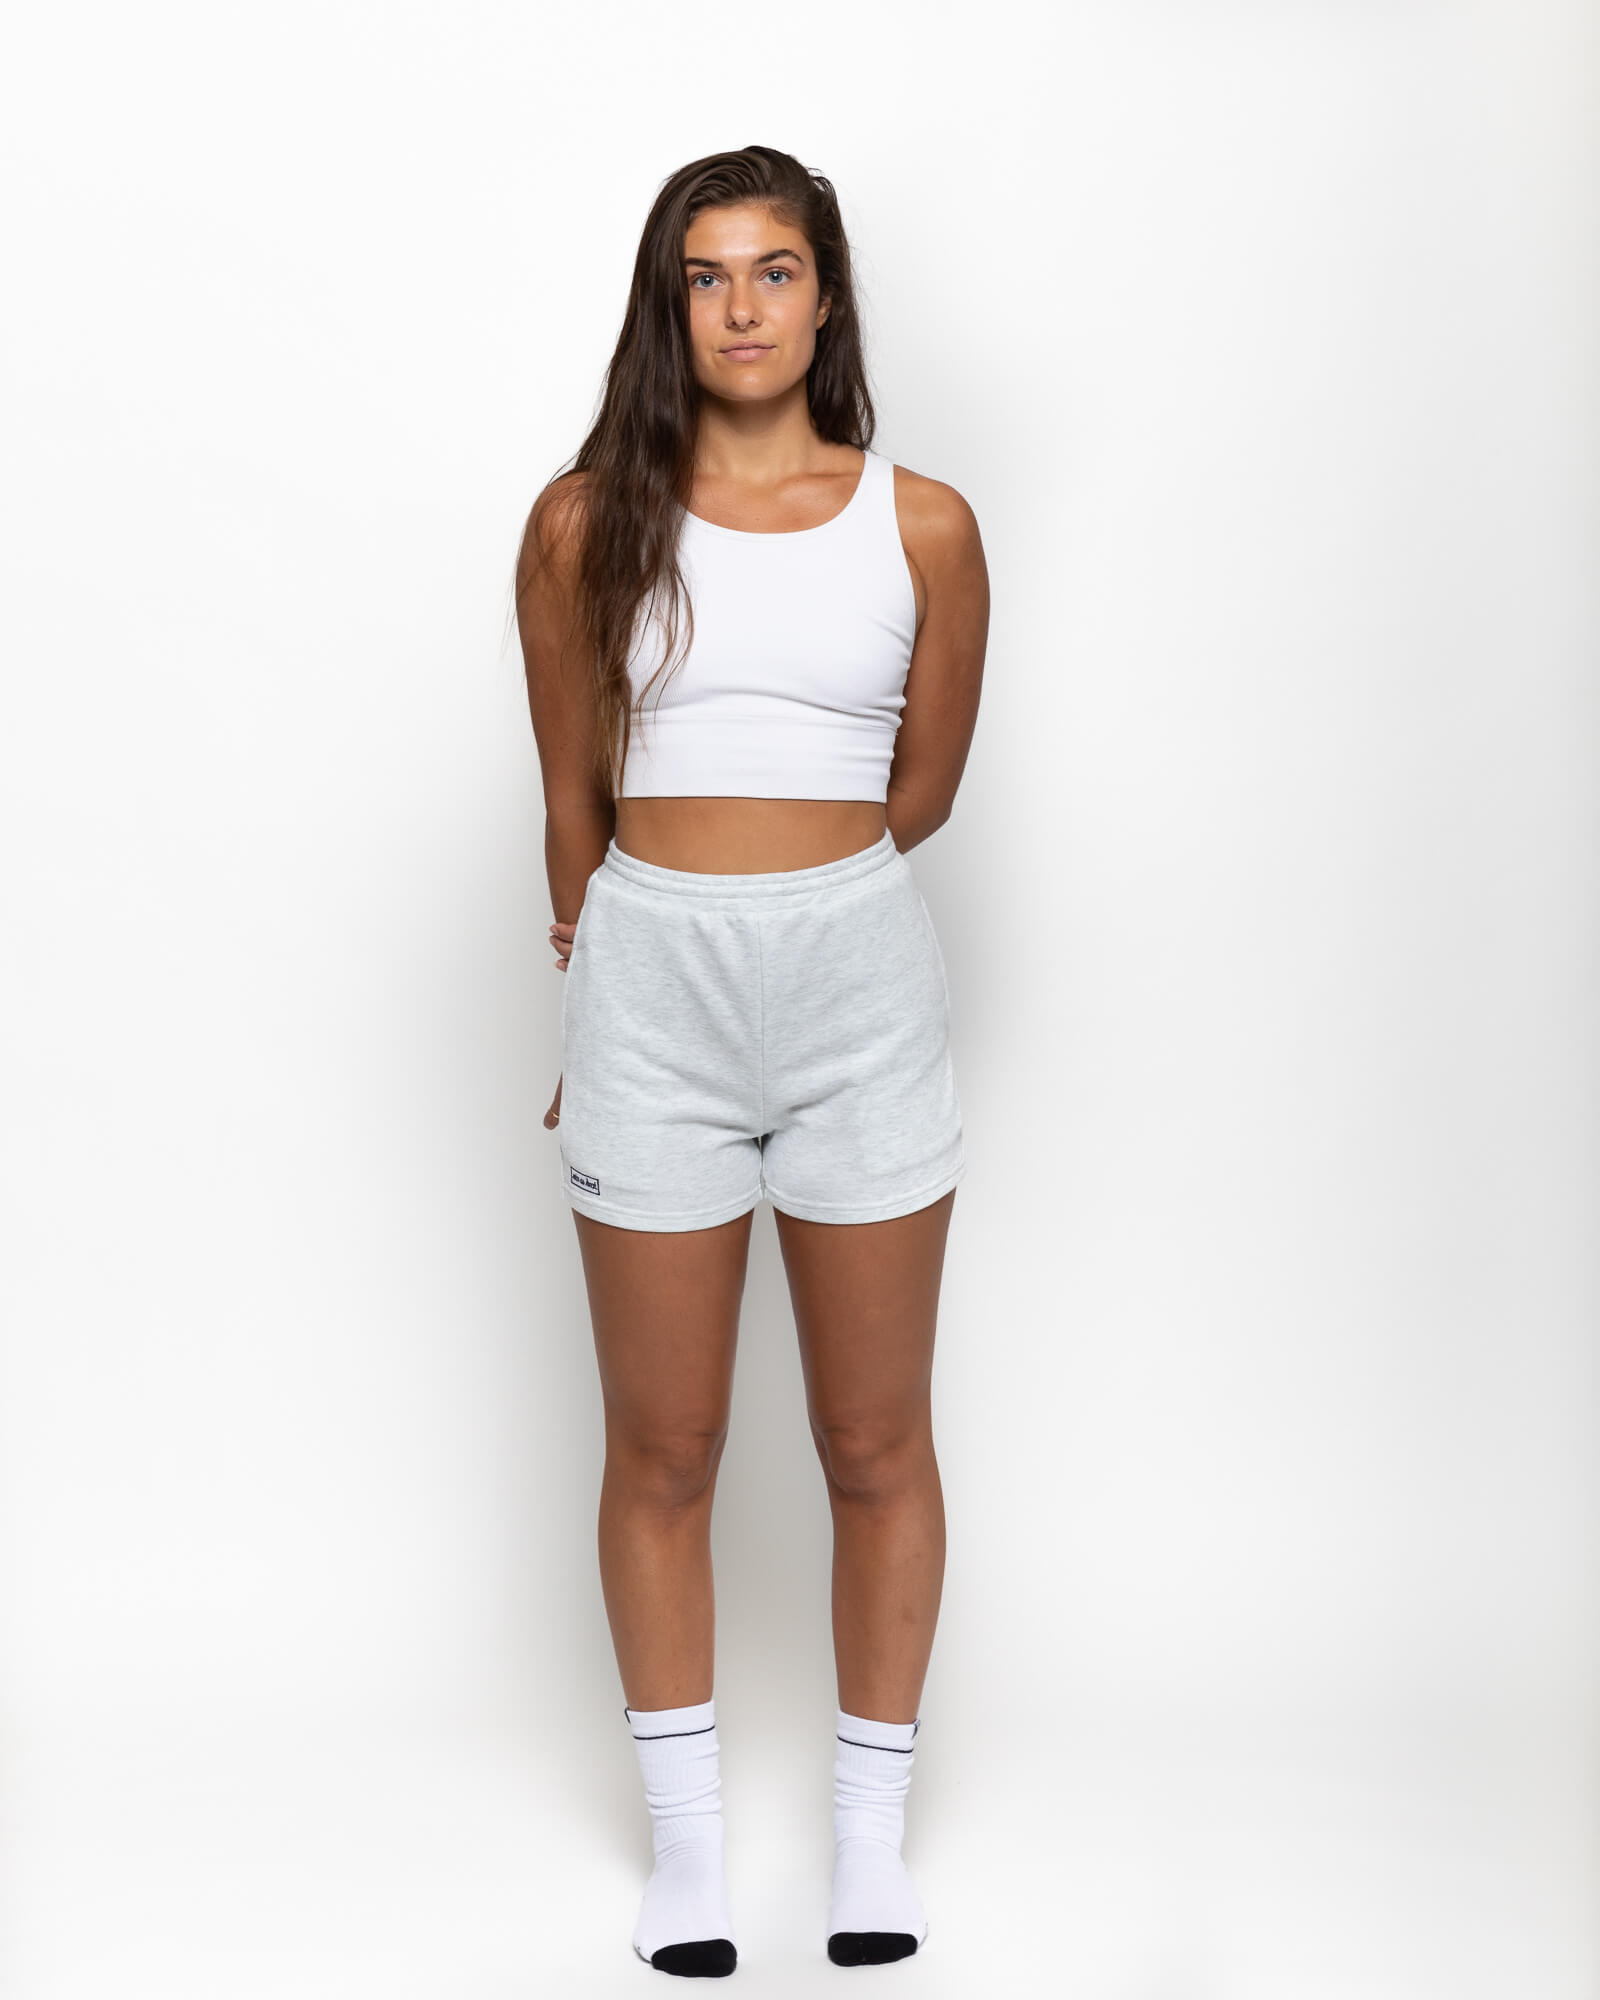 front view of a girl wearing the shorts in a white tank top and white socks